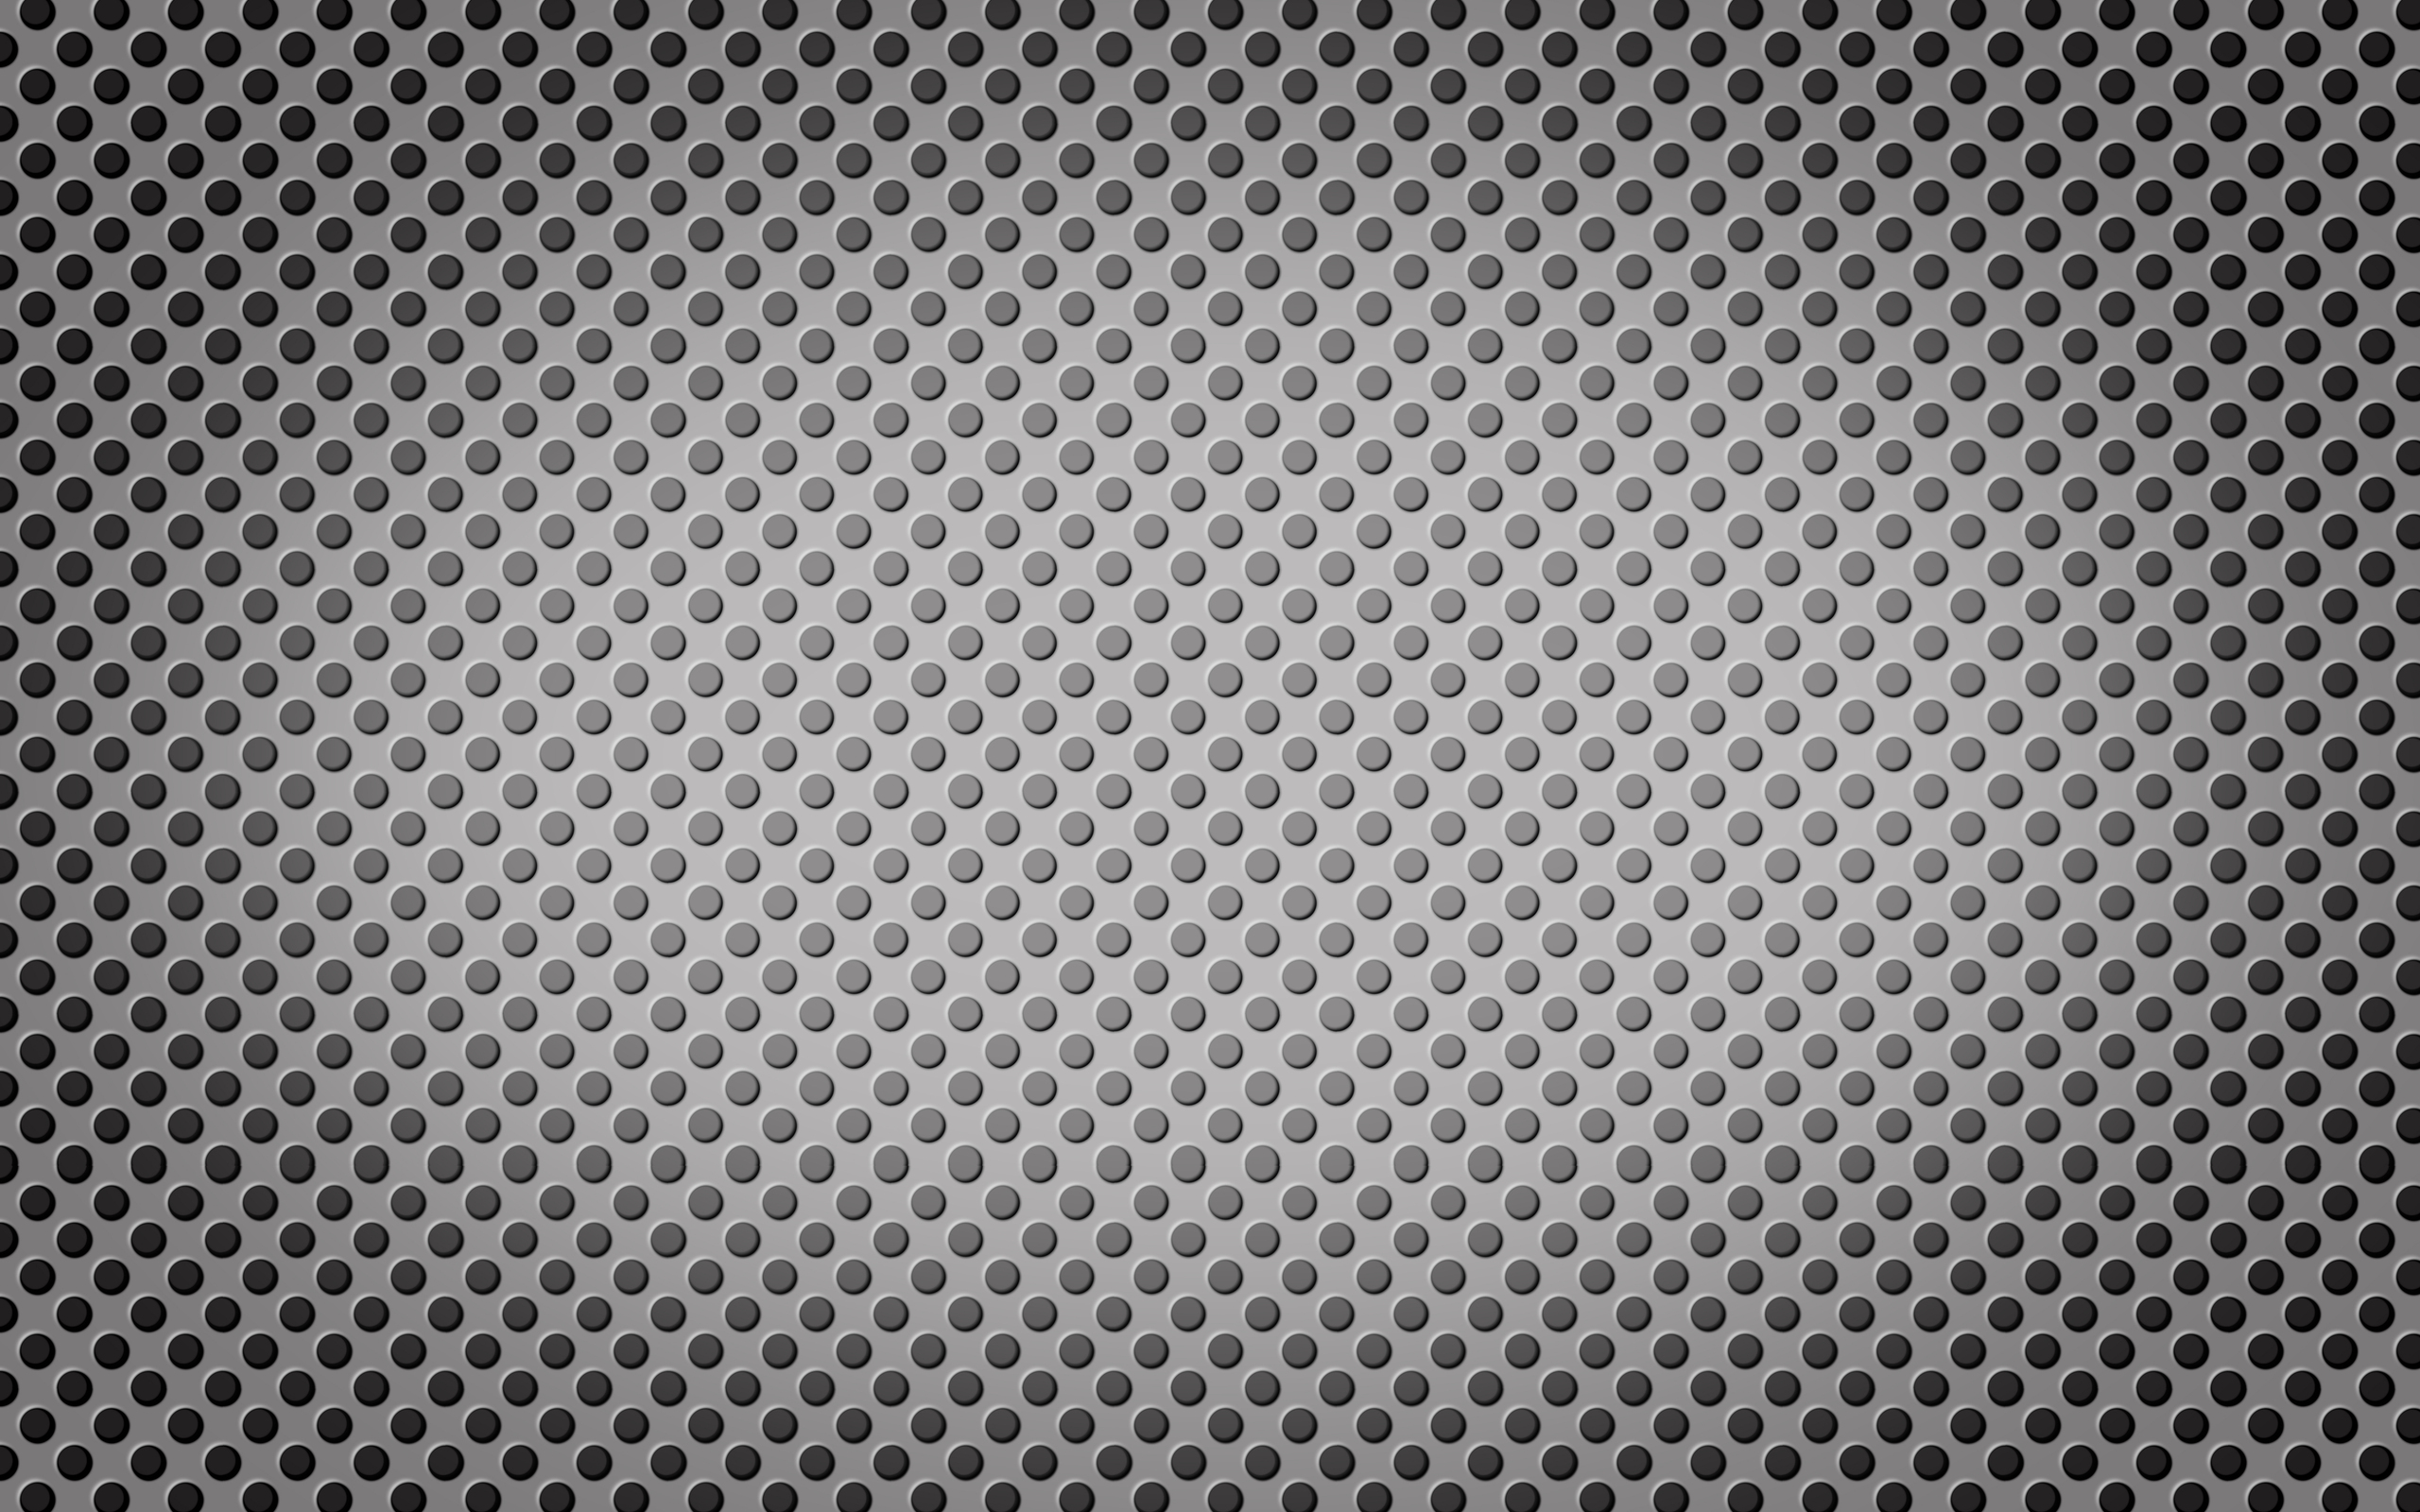 Metal Computer Wallpapers Desktop Backgrounds 2560x1600